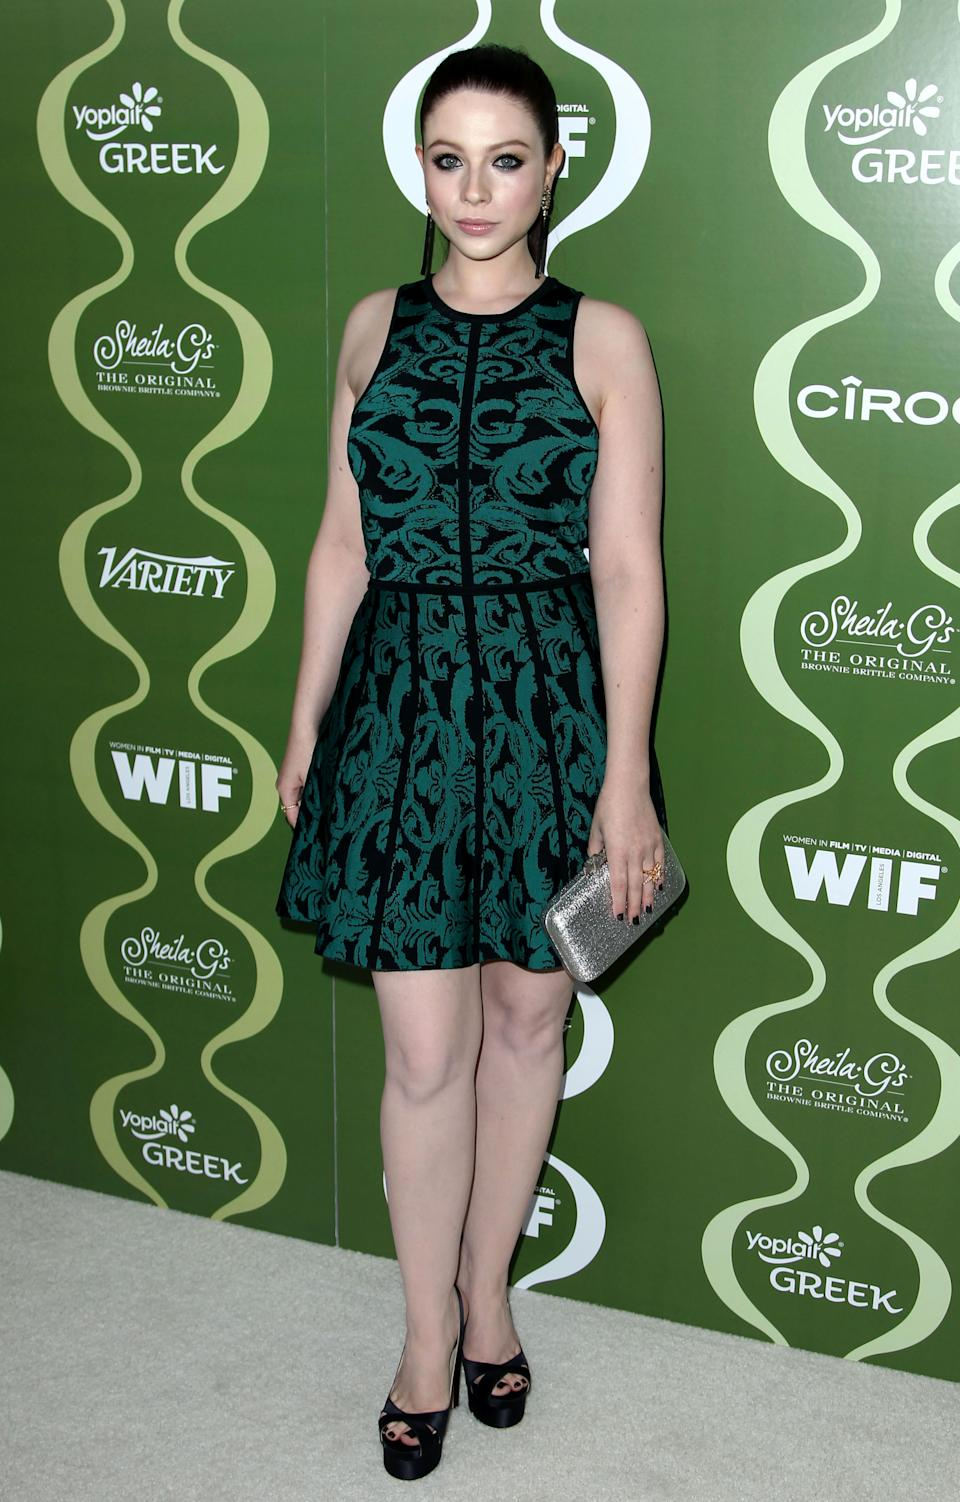 Michelle Trachtenberg arrives at the 2013 Women In Film pre-emmy event at Scarpetta at the Montage Hotel on Friday, Sept. 20, 2013 in Beverly Hills, Calif. (Photo by Matt Sayles/Invision/AP)